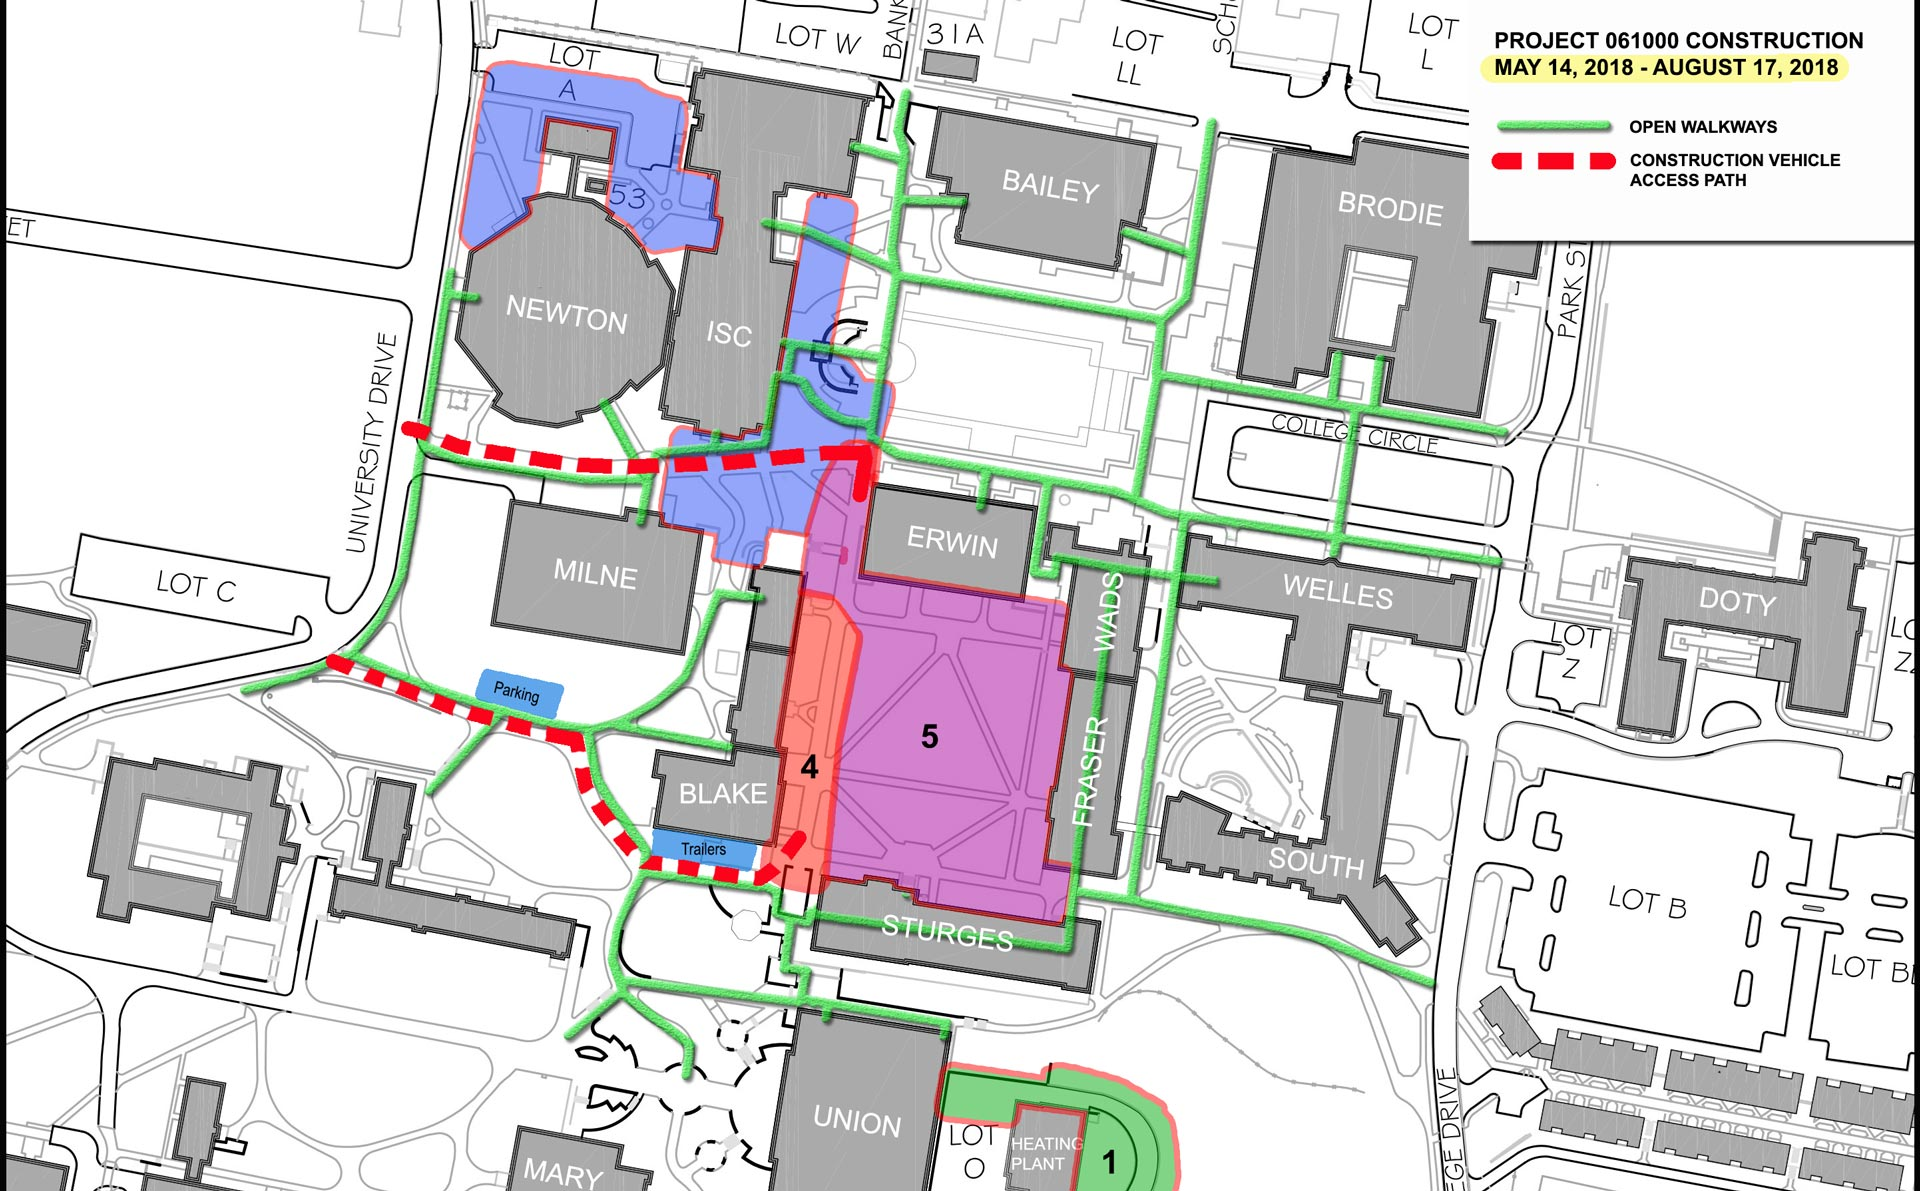 Construction Update: Sturges Quad to Be Completed, Other ... on suny college campus map, newton campus map, elmira campus map, mount vernon campus map, cazenovia campus map, springfield campus map, wheaton campus map, macomb campus map, lawrence campus map, jamestown campus map, marion campus map, webster campus map, wichita campus map, garden city campus map, aurora campus map, newark campus map, flanagan campus map, charleston campus map, spring valley campus map, kingston campus map,